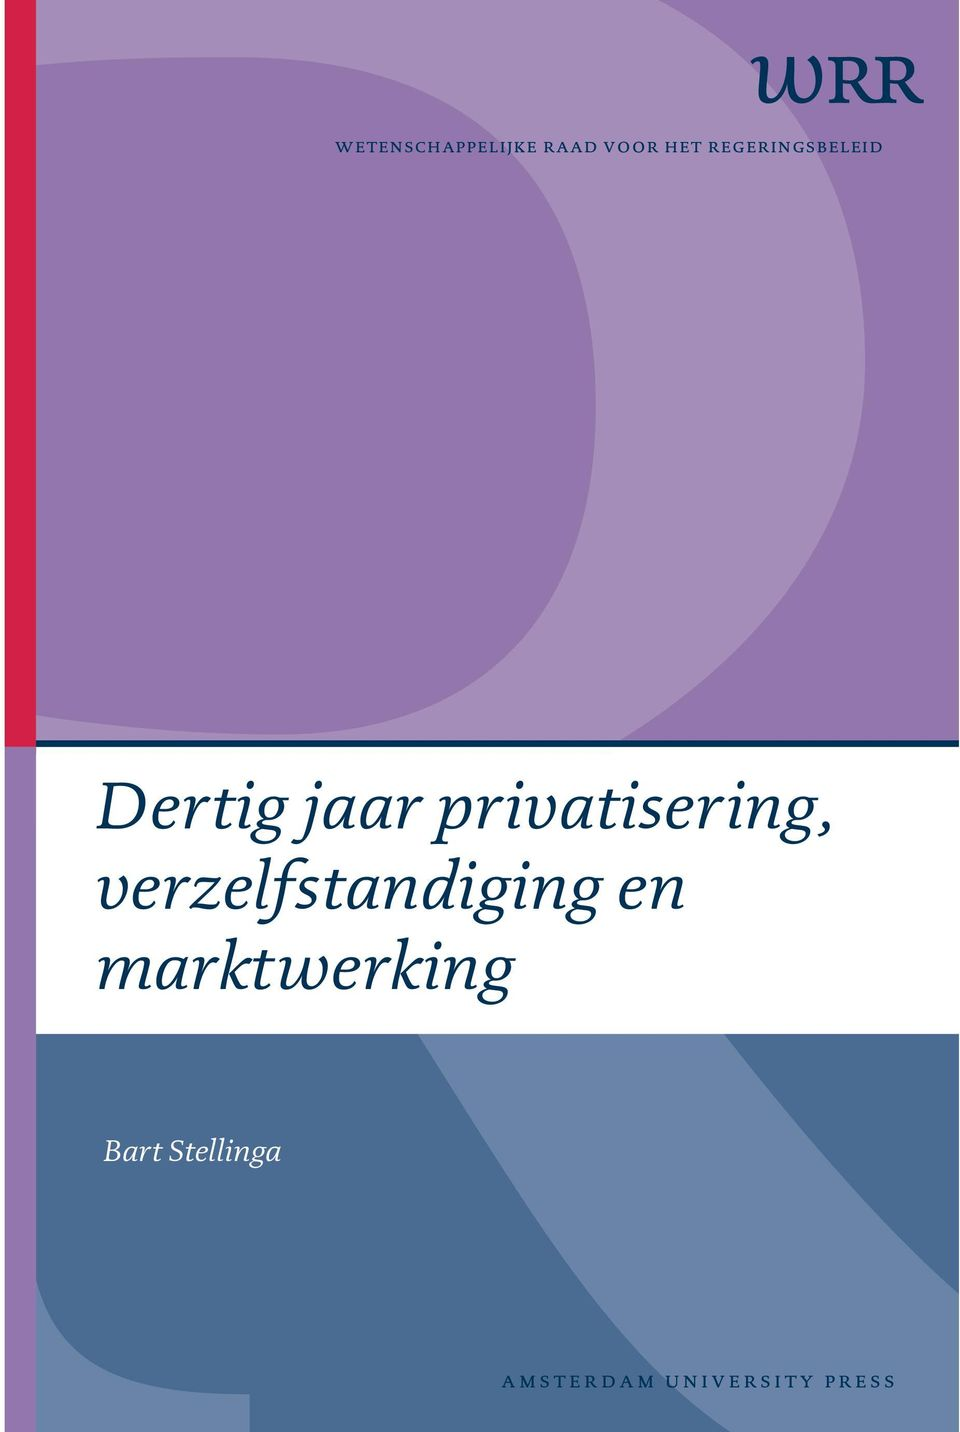 privatisering, verzelfstandiging en marktwerking